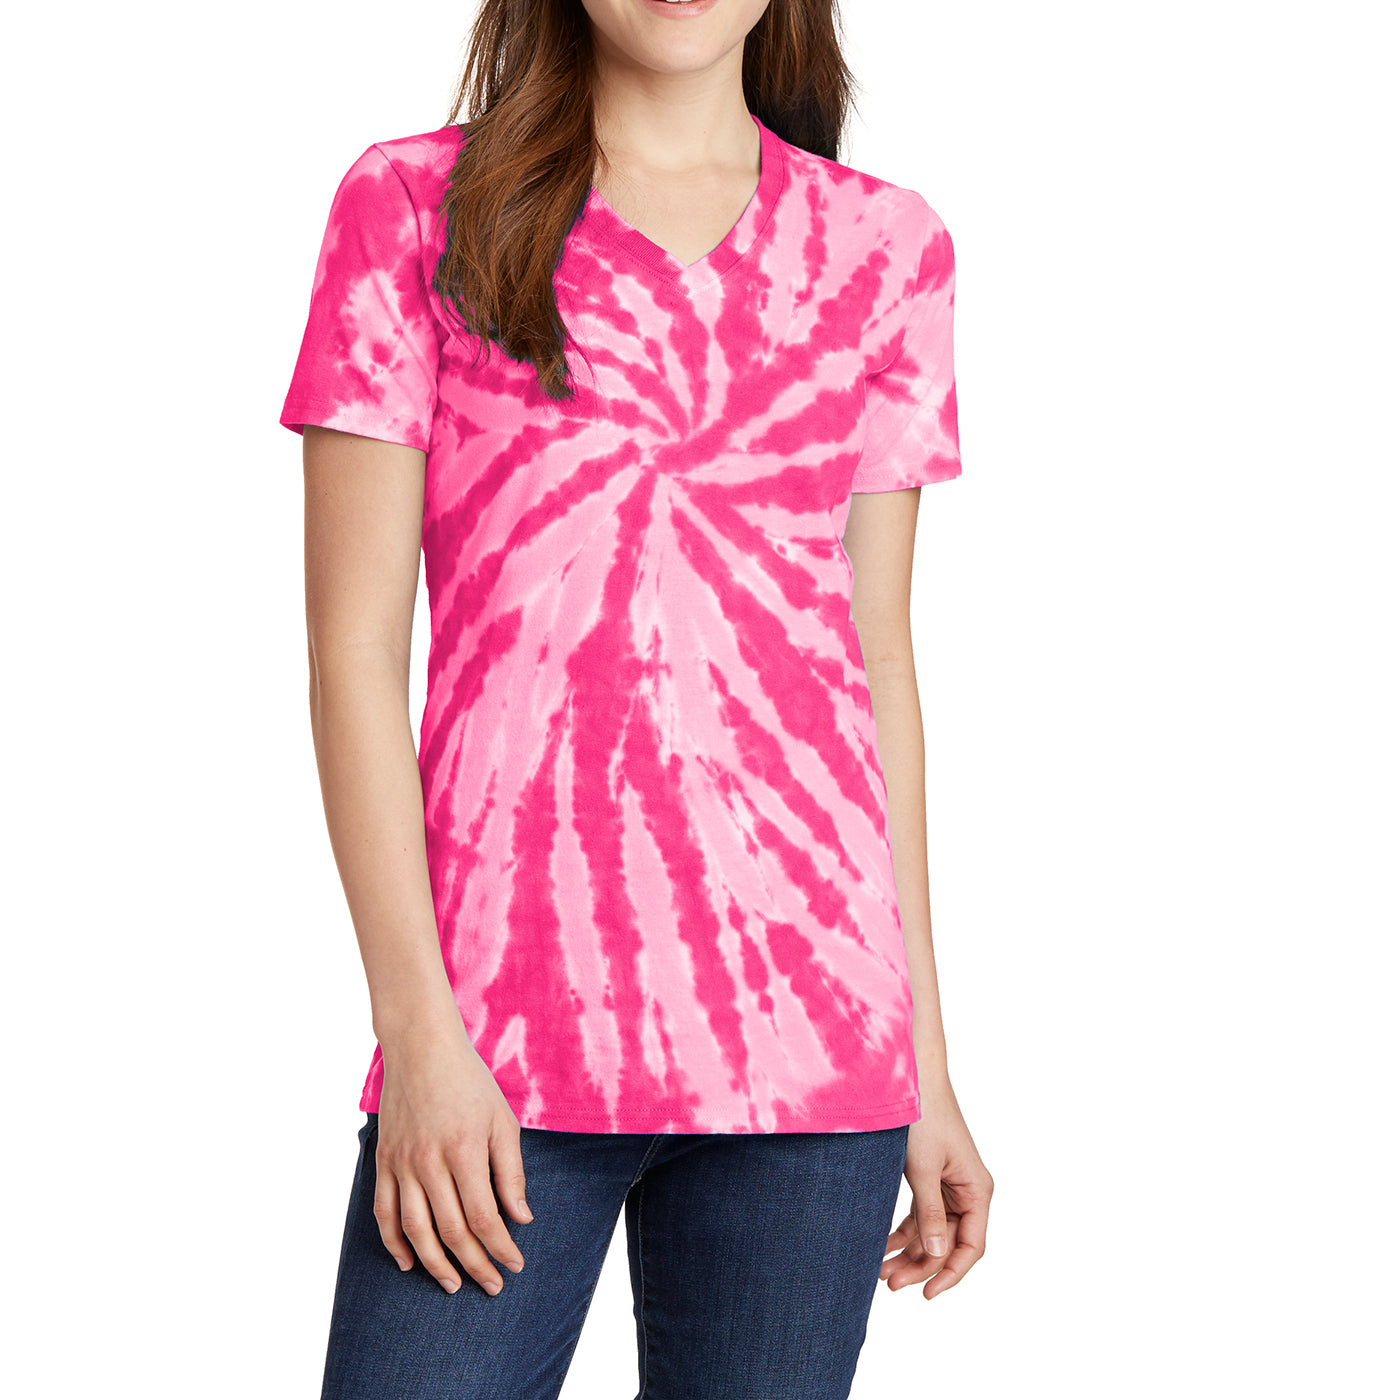 Womens Tie-Dye V-Neck Tee -  Pink - Front